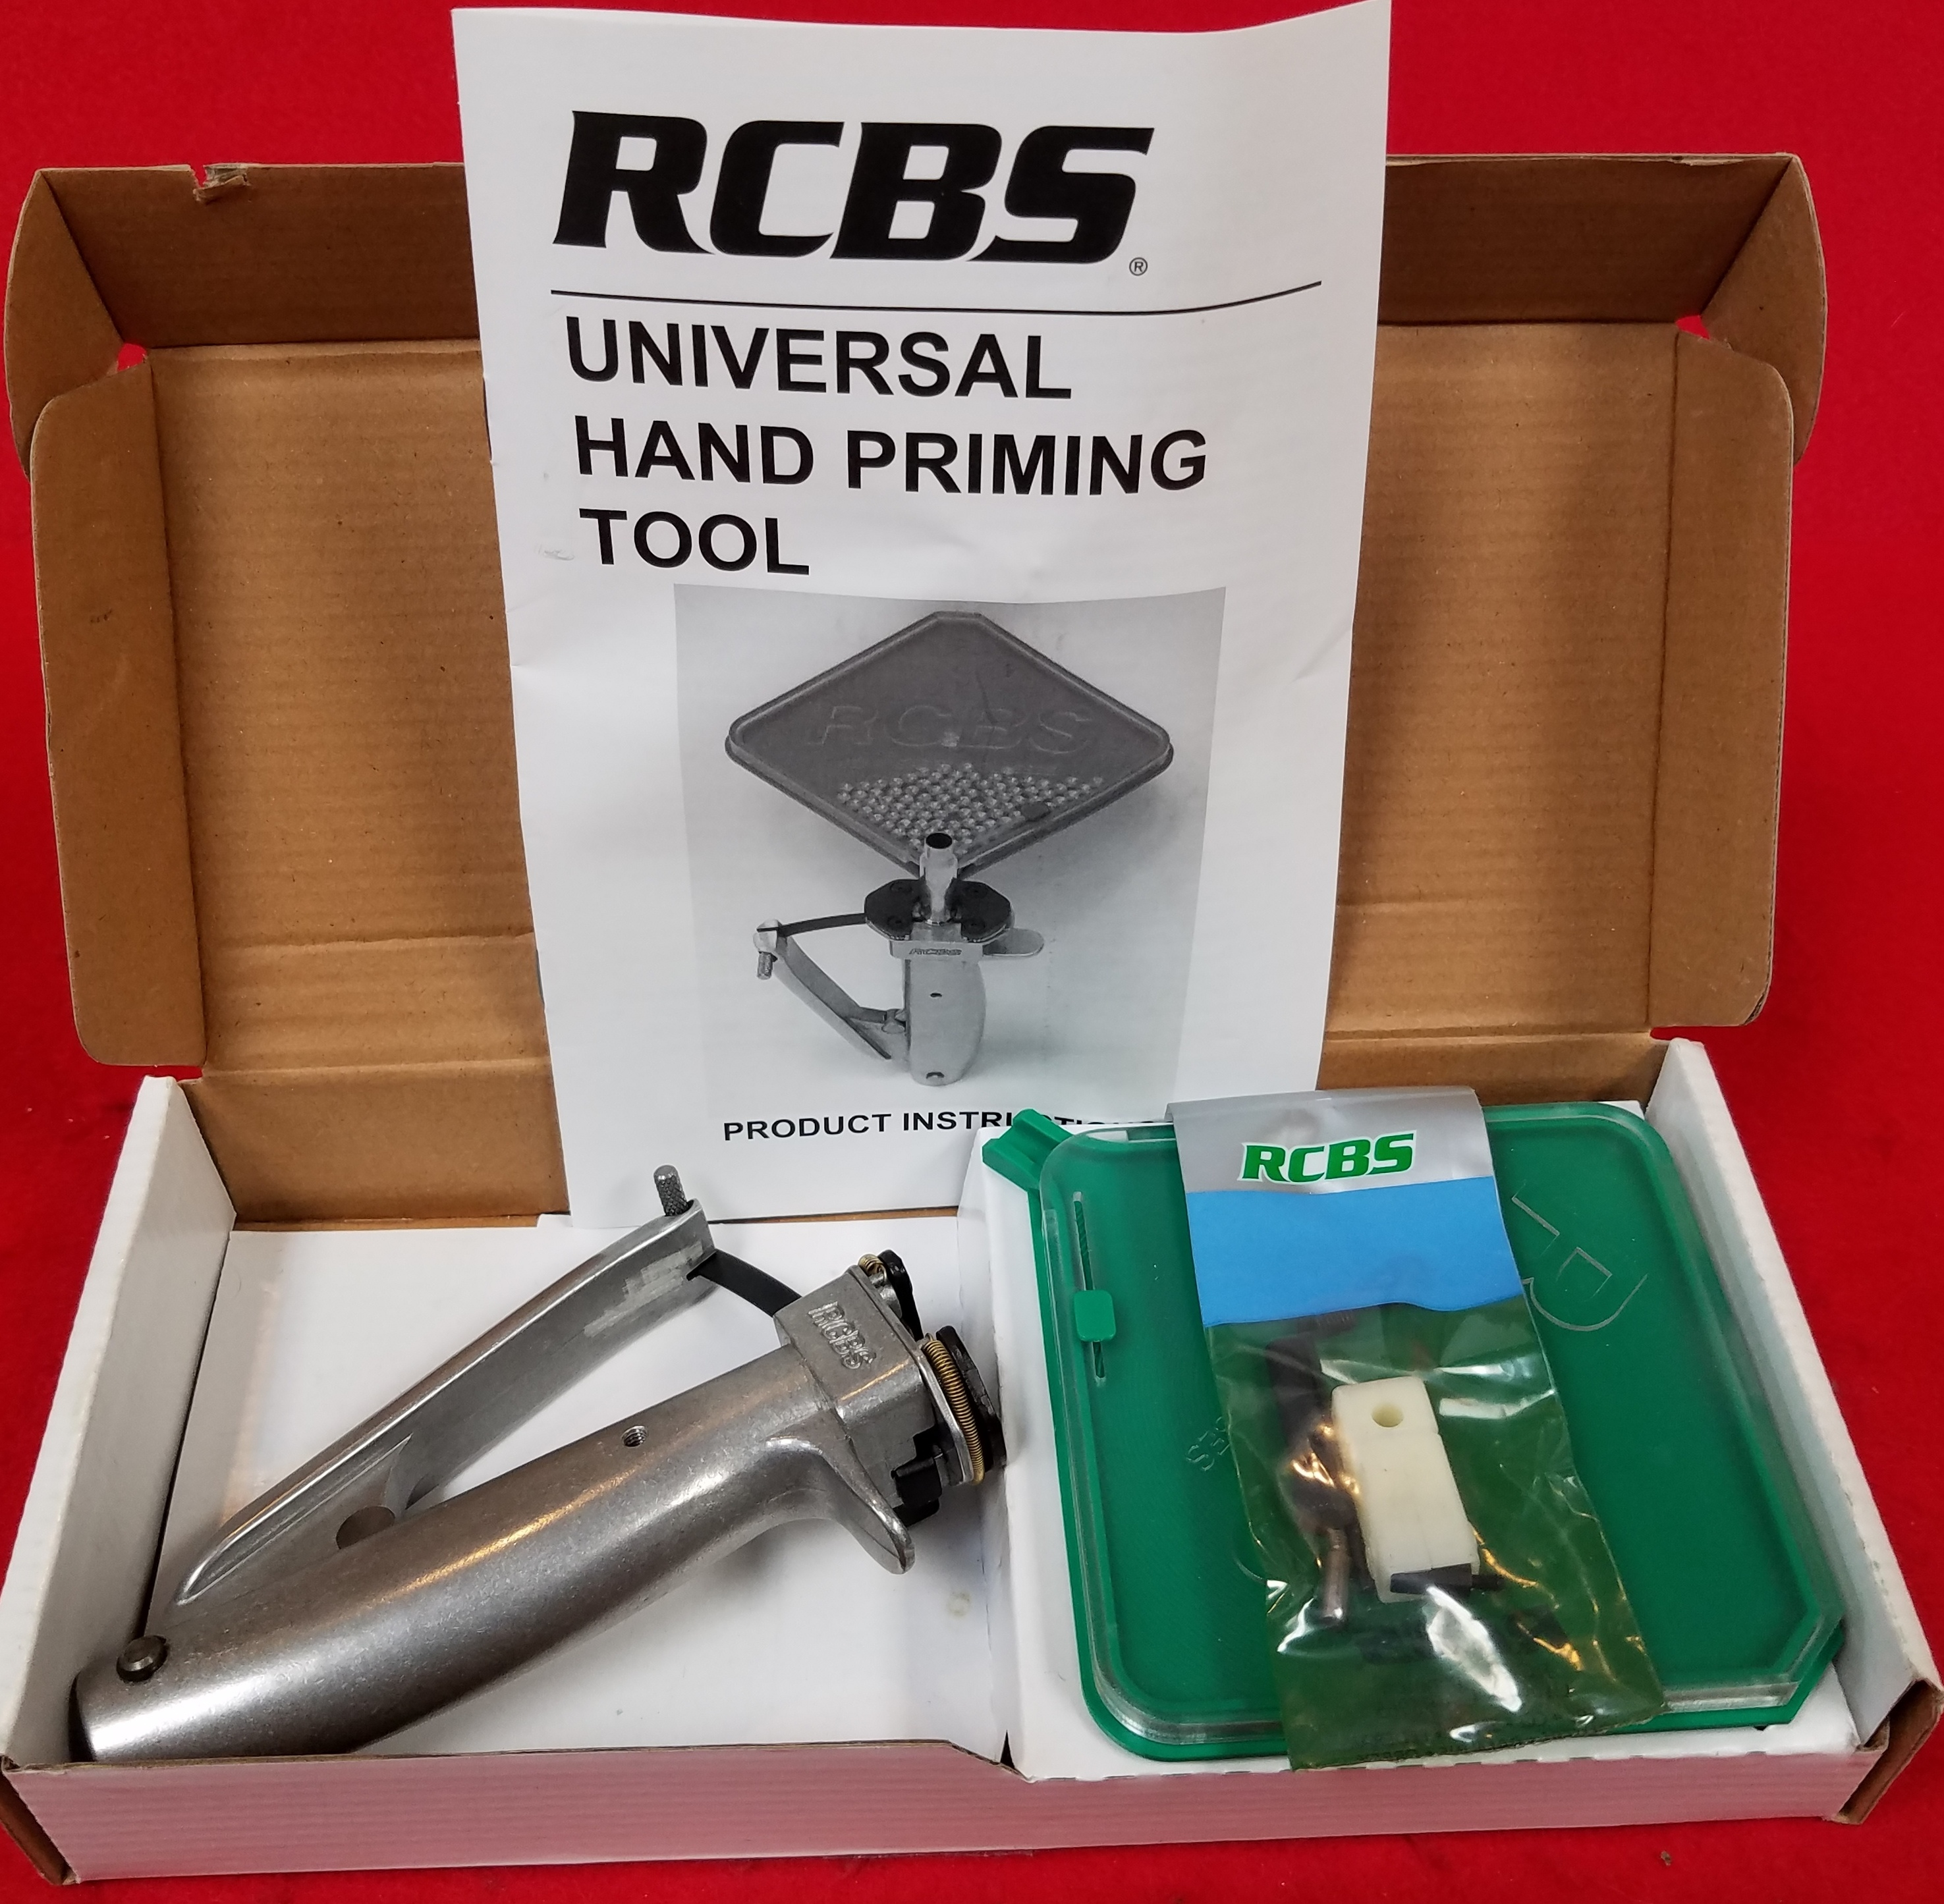 RCBS 90201 - UNIVERSAL HAND PRIMING TOOL